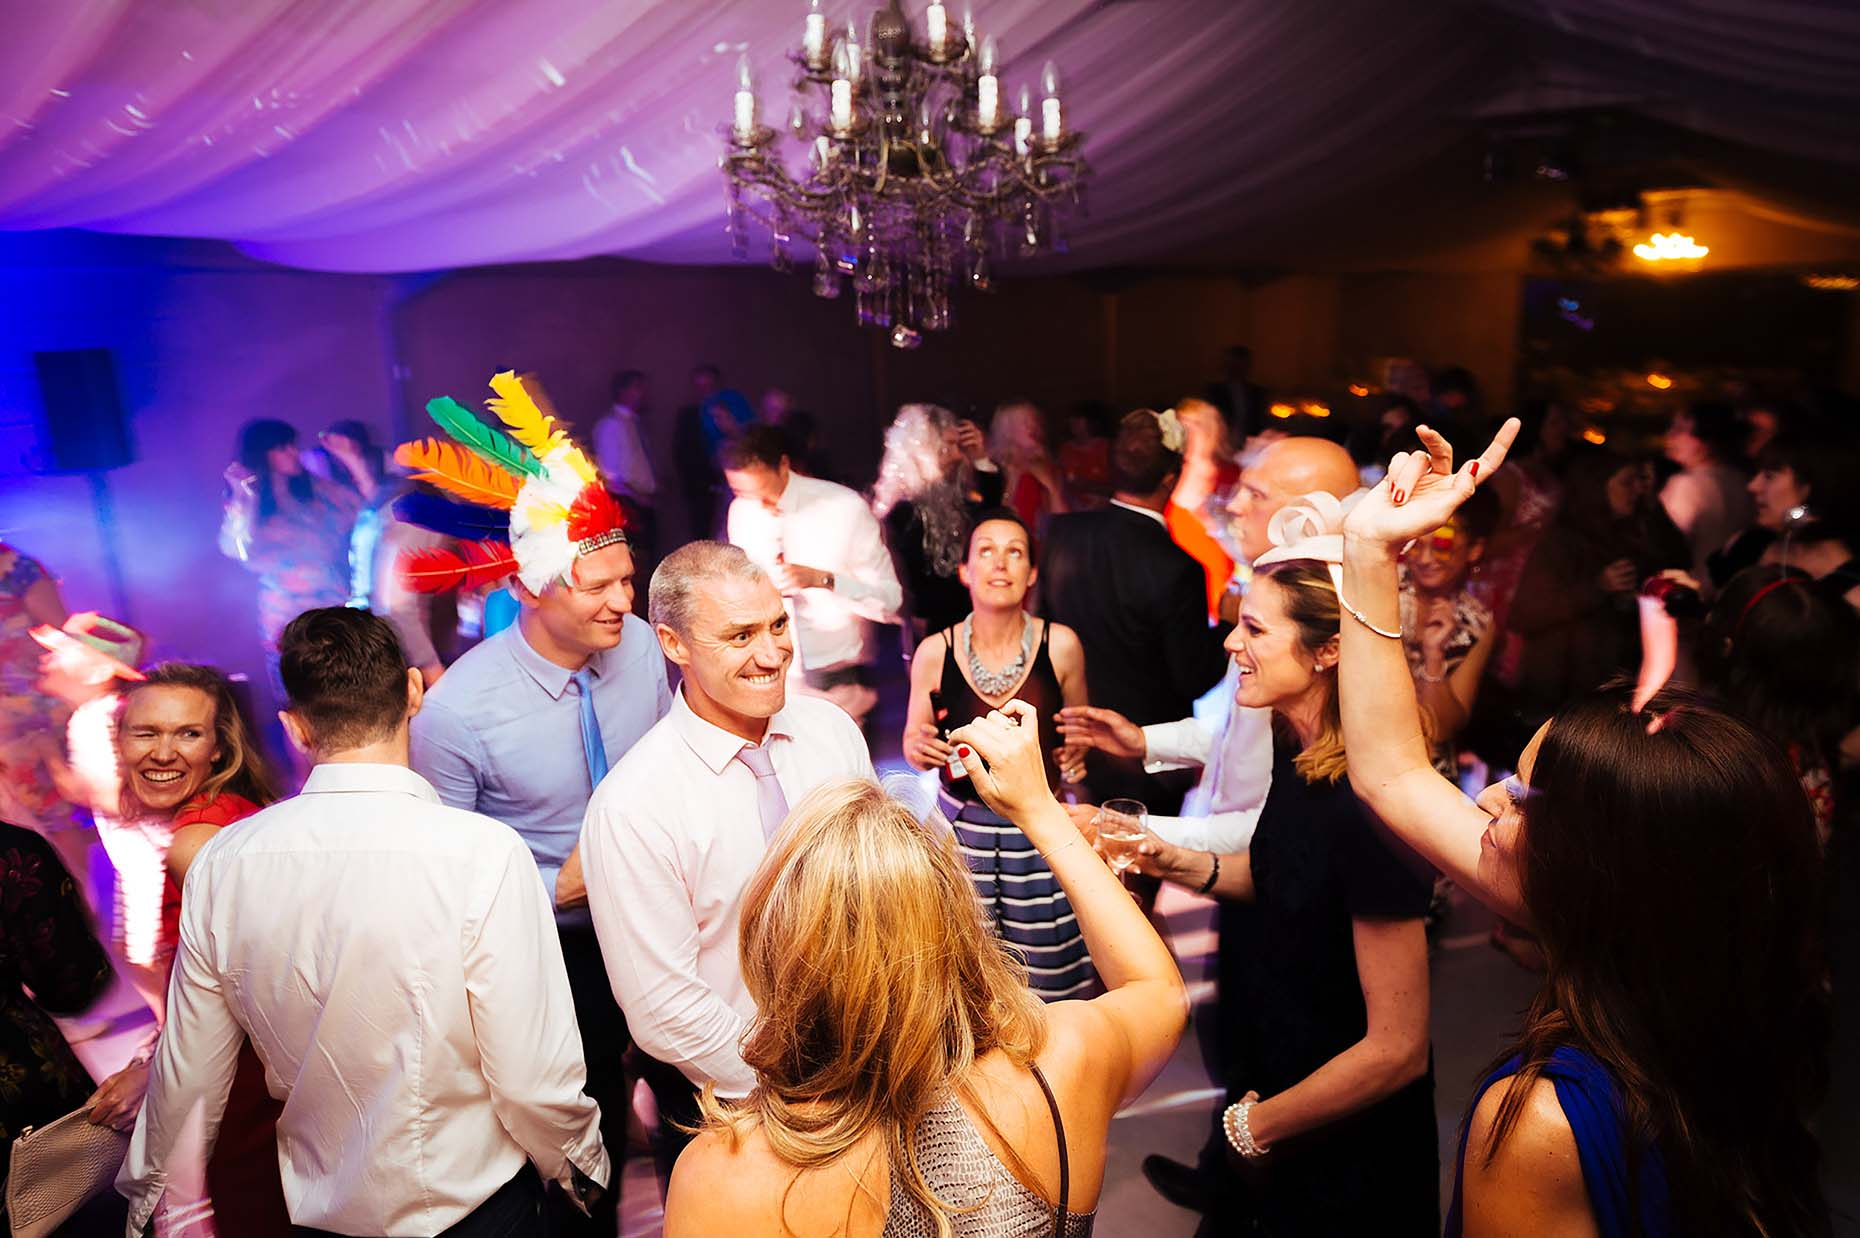 axnoller-house-dorset-weddings-photographer-dancefloor-party-21